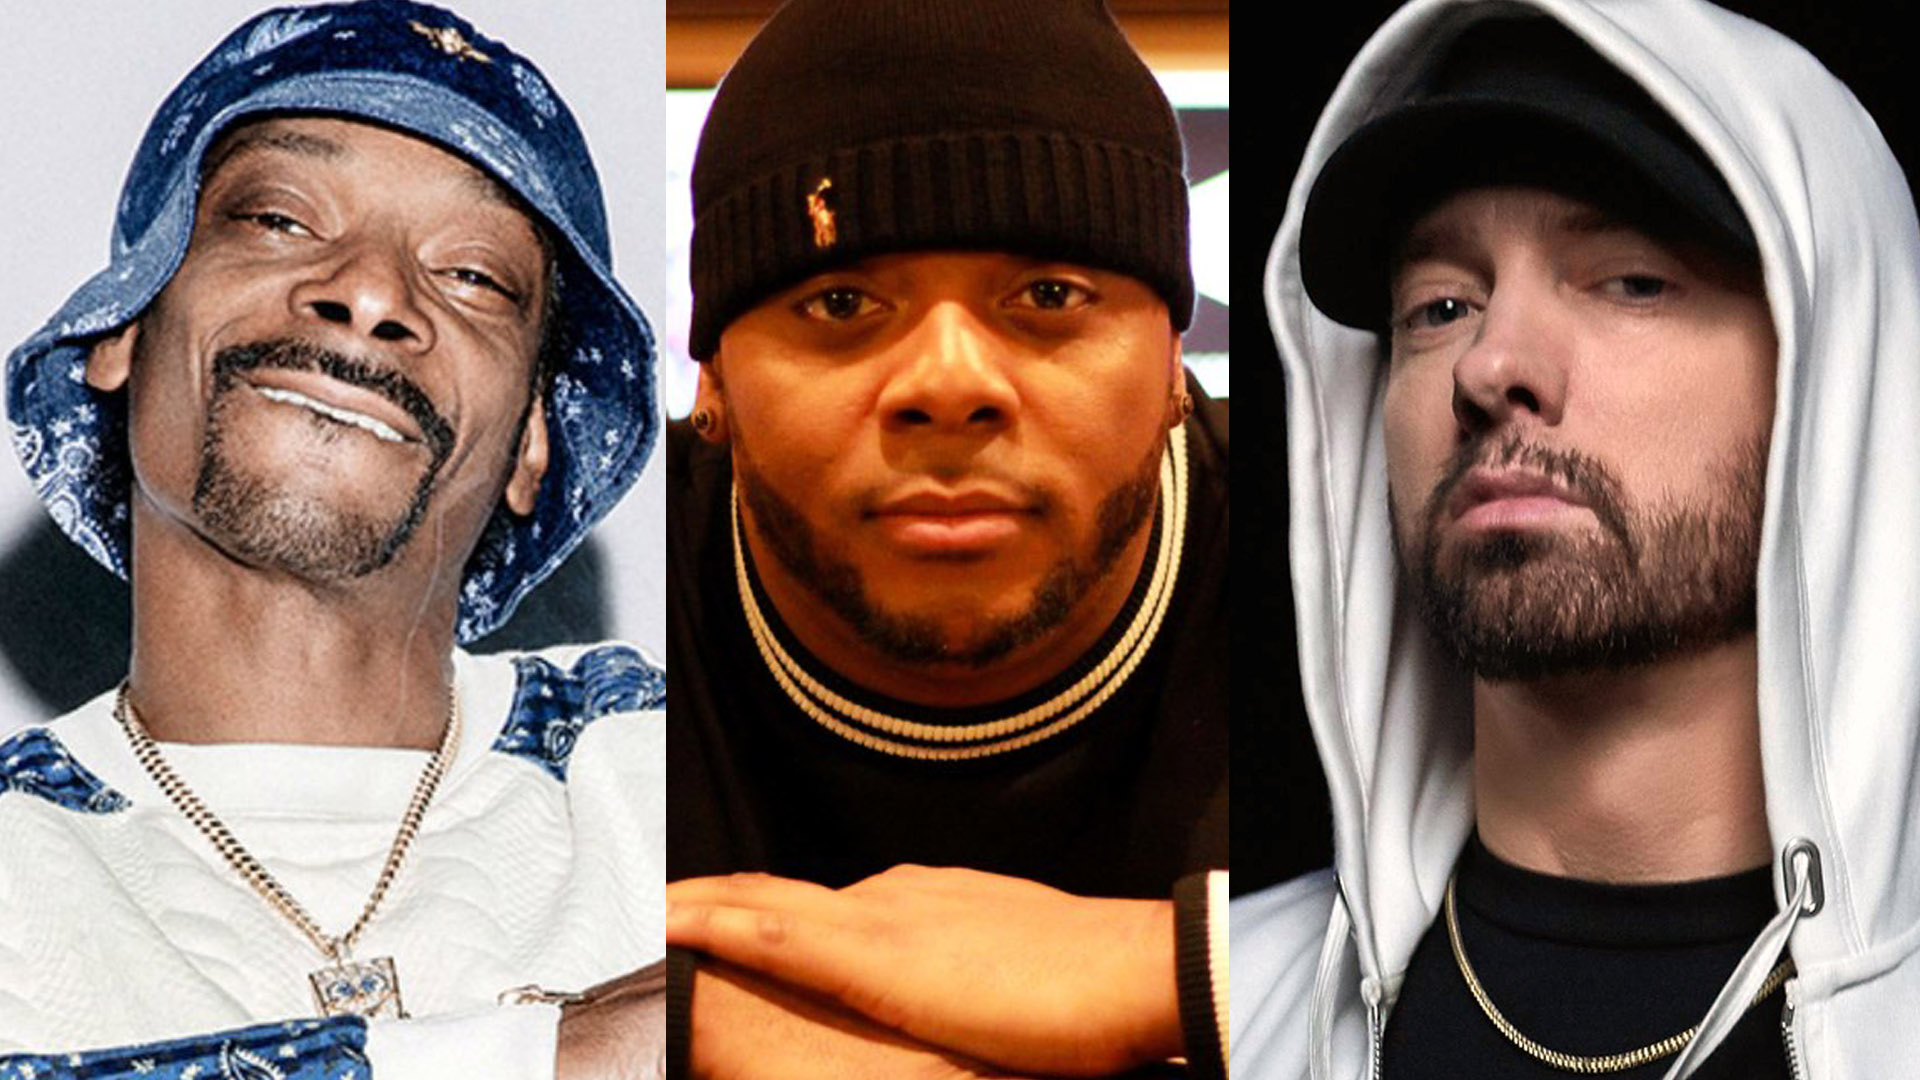 Mr. Porter: There's No Beef Between Snoop Dogg And Eminem